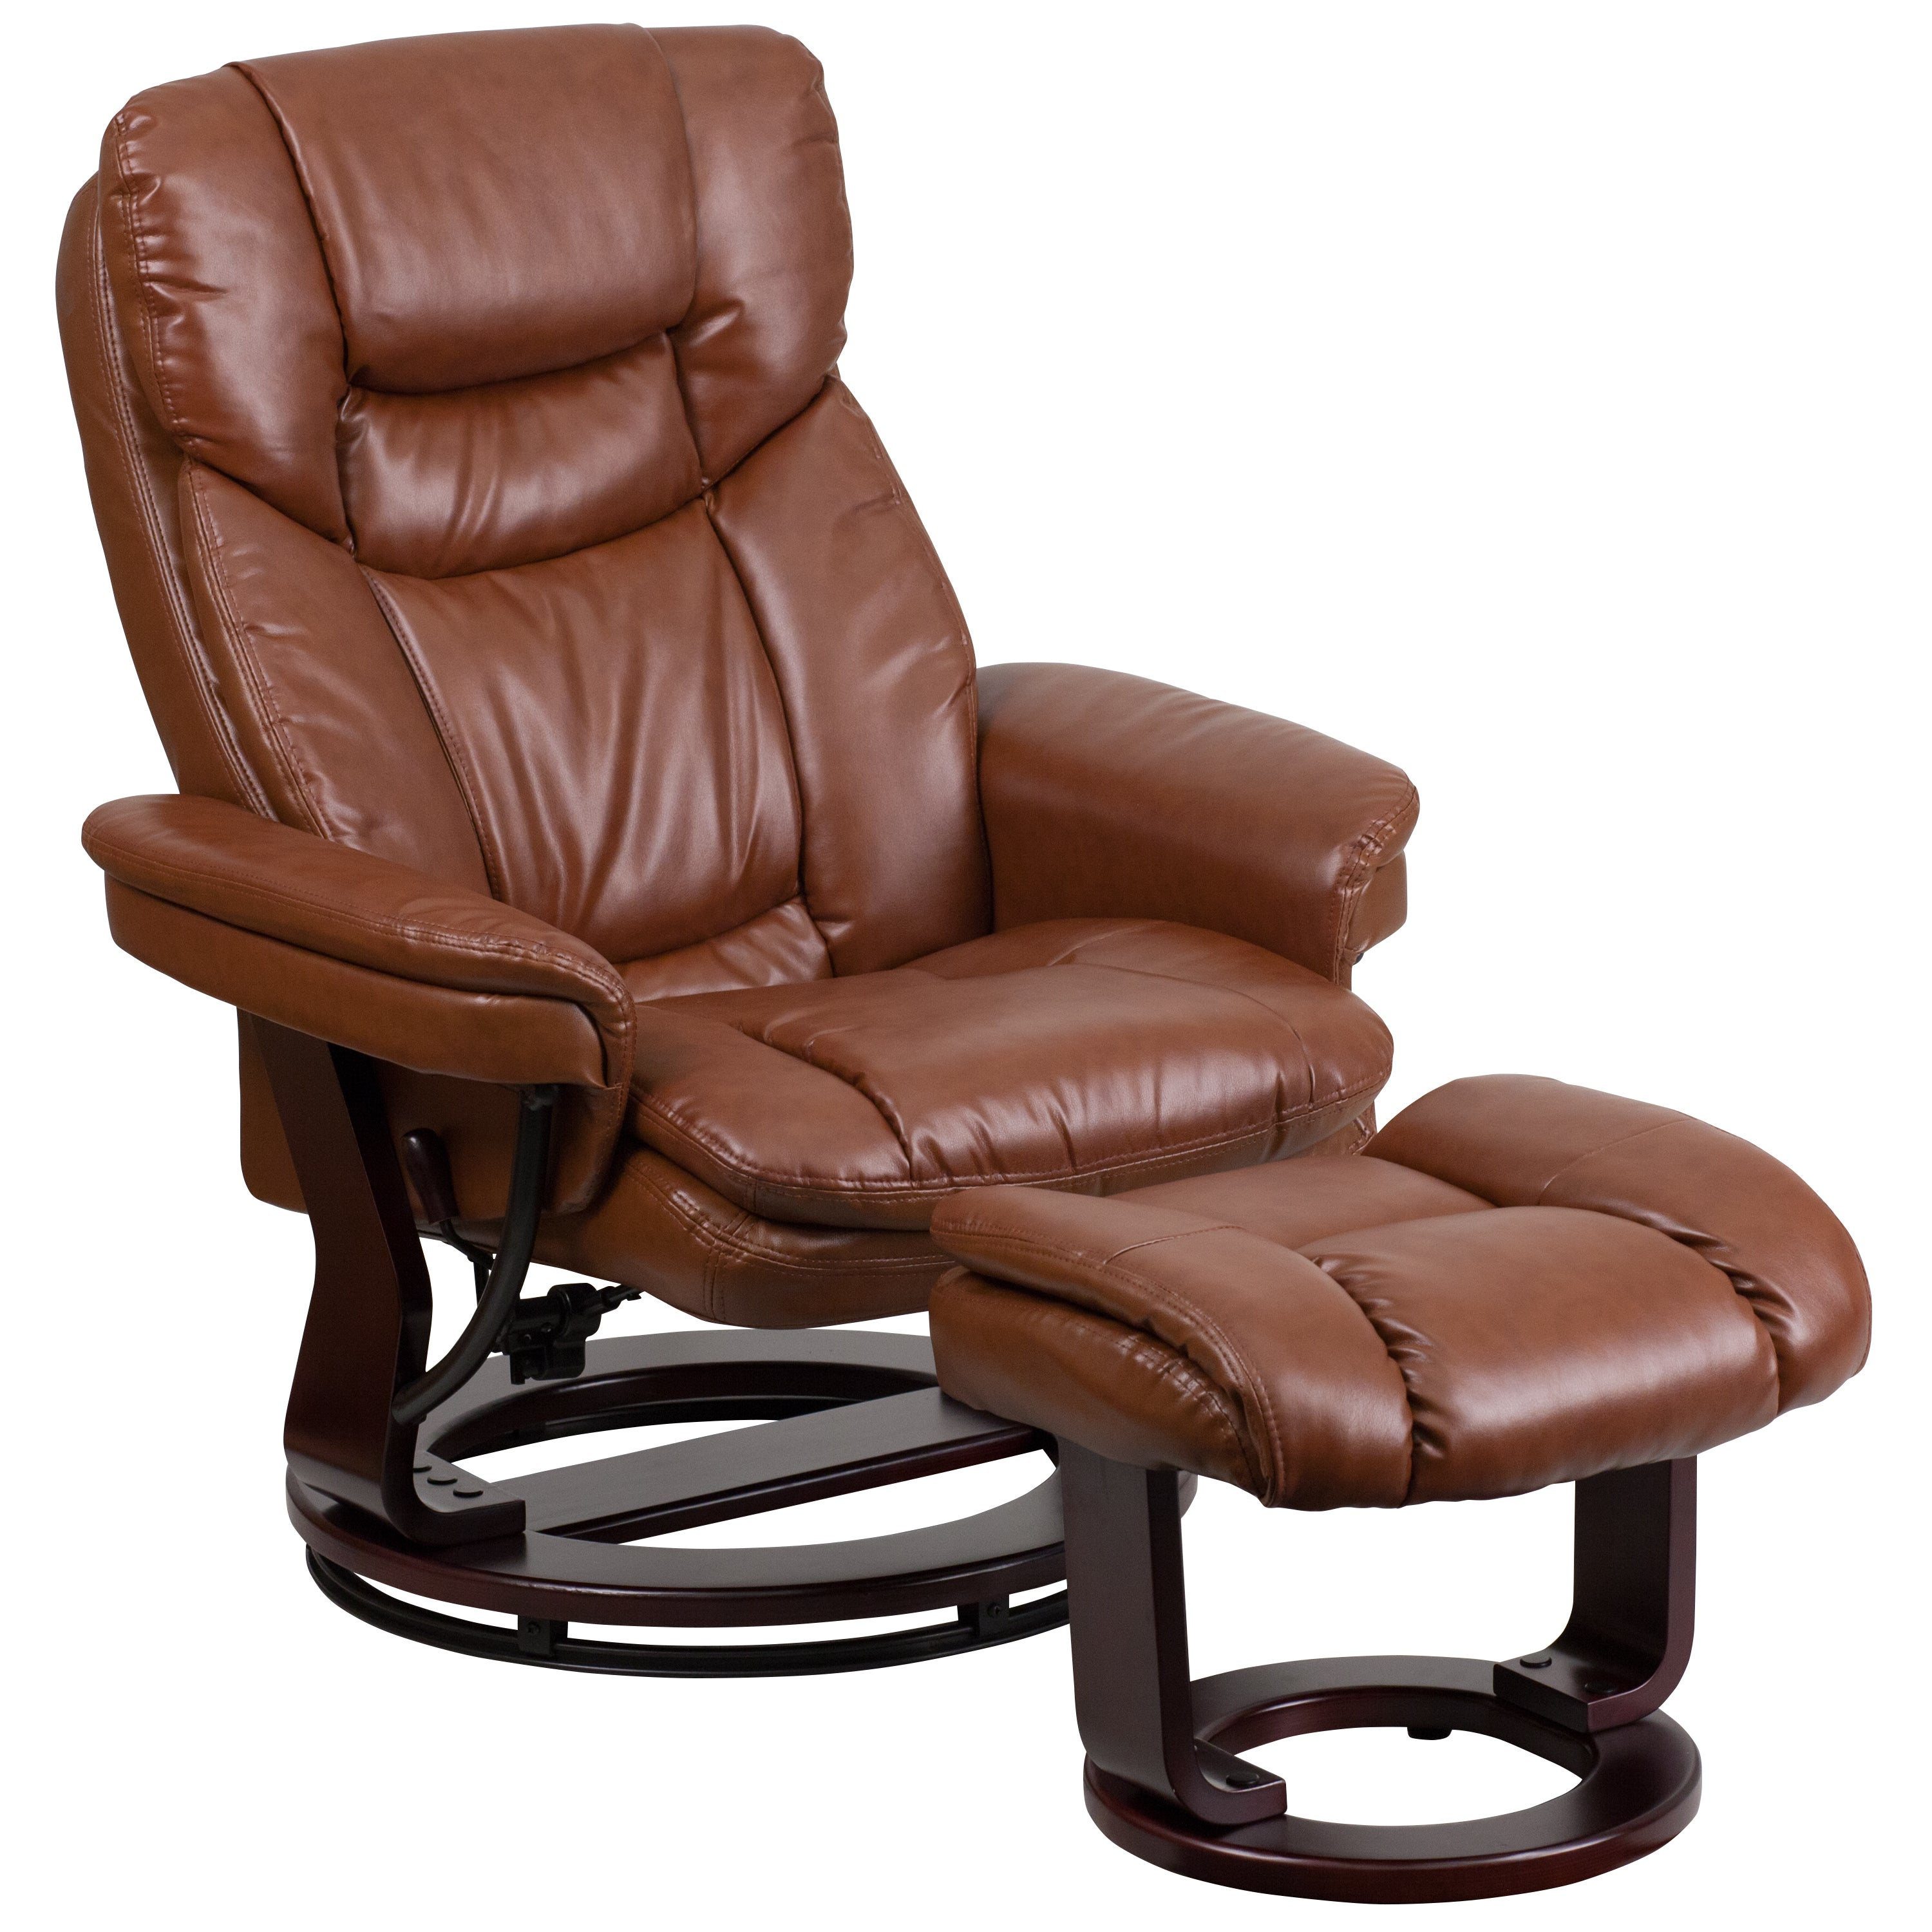 Leather Recliner with Ottoman Free Shipping Today Overstock